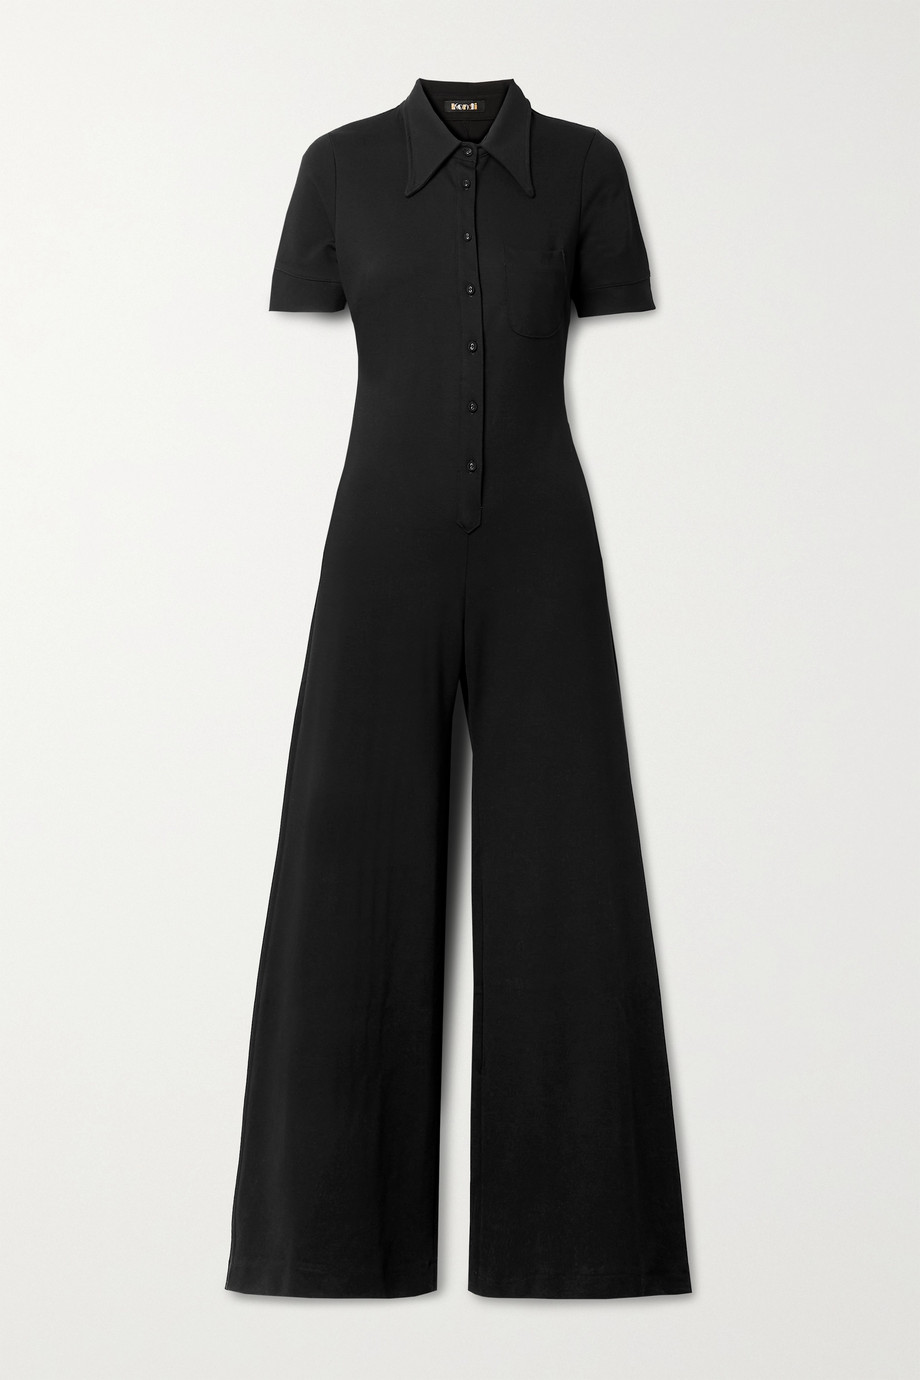 Suzie Kondi Combi-pantalon en mailles point de Rome stretch